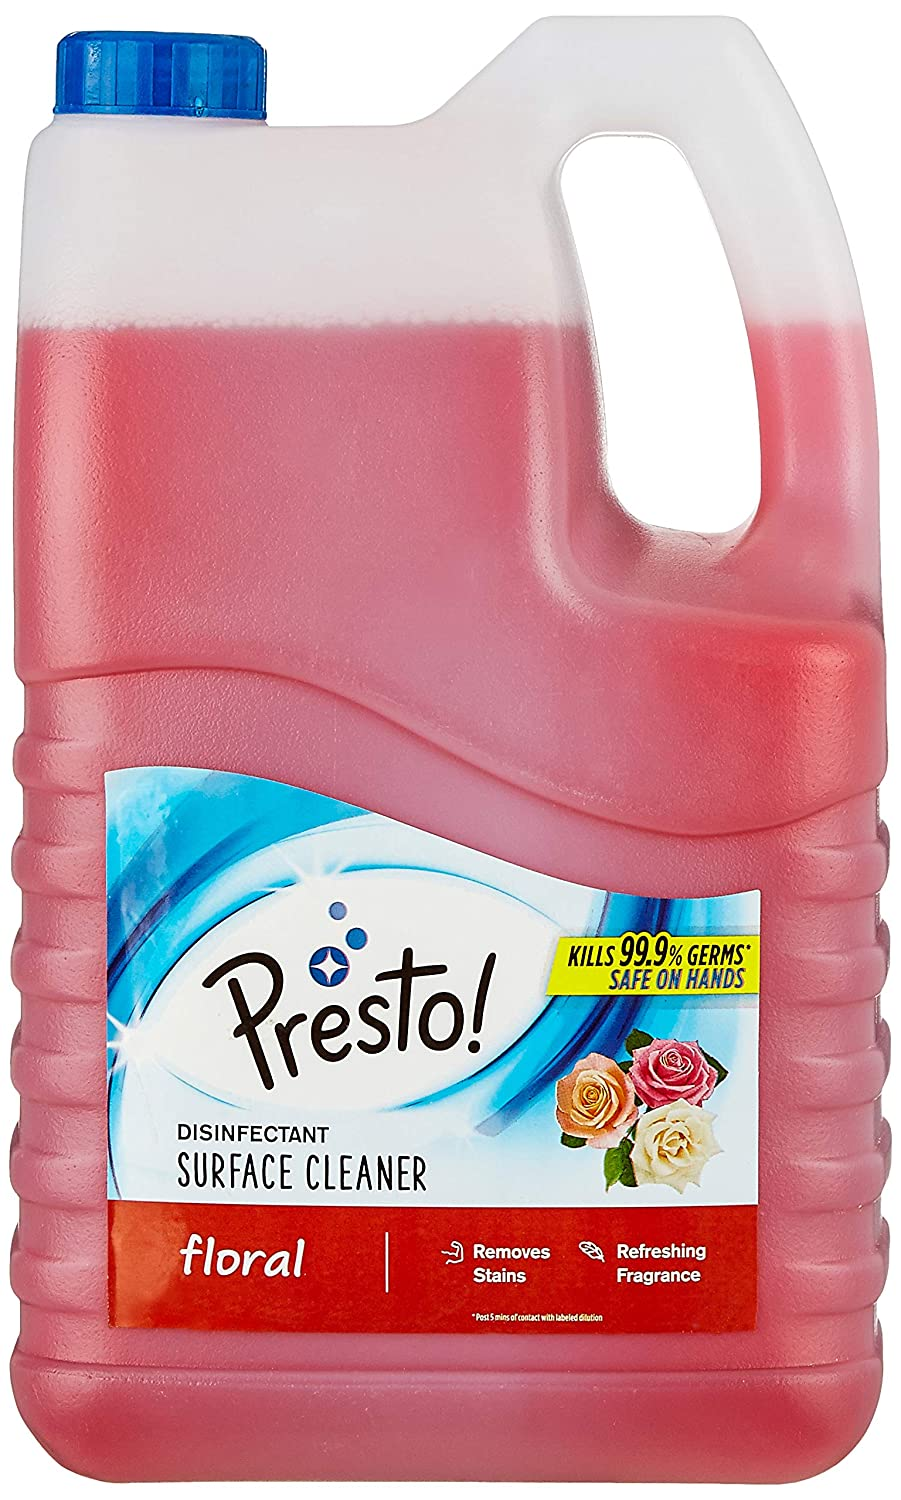 [Pantry] Amazon Brand - Presto! Disinfectant Surface Cleaner - 5 L (Floral)